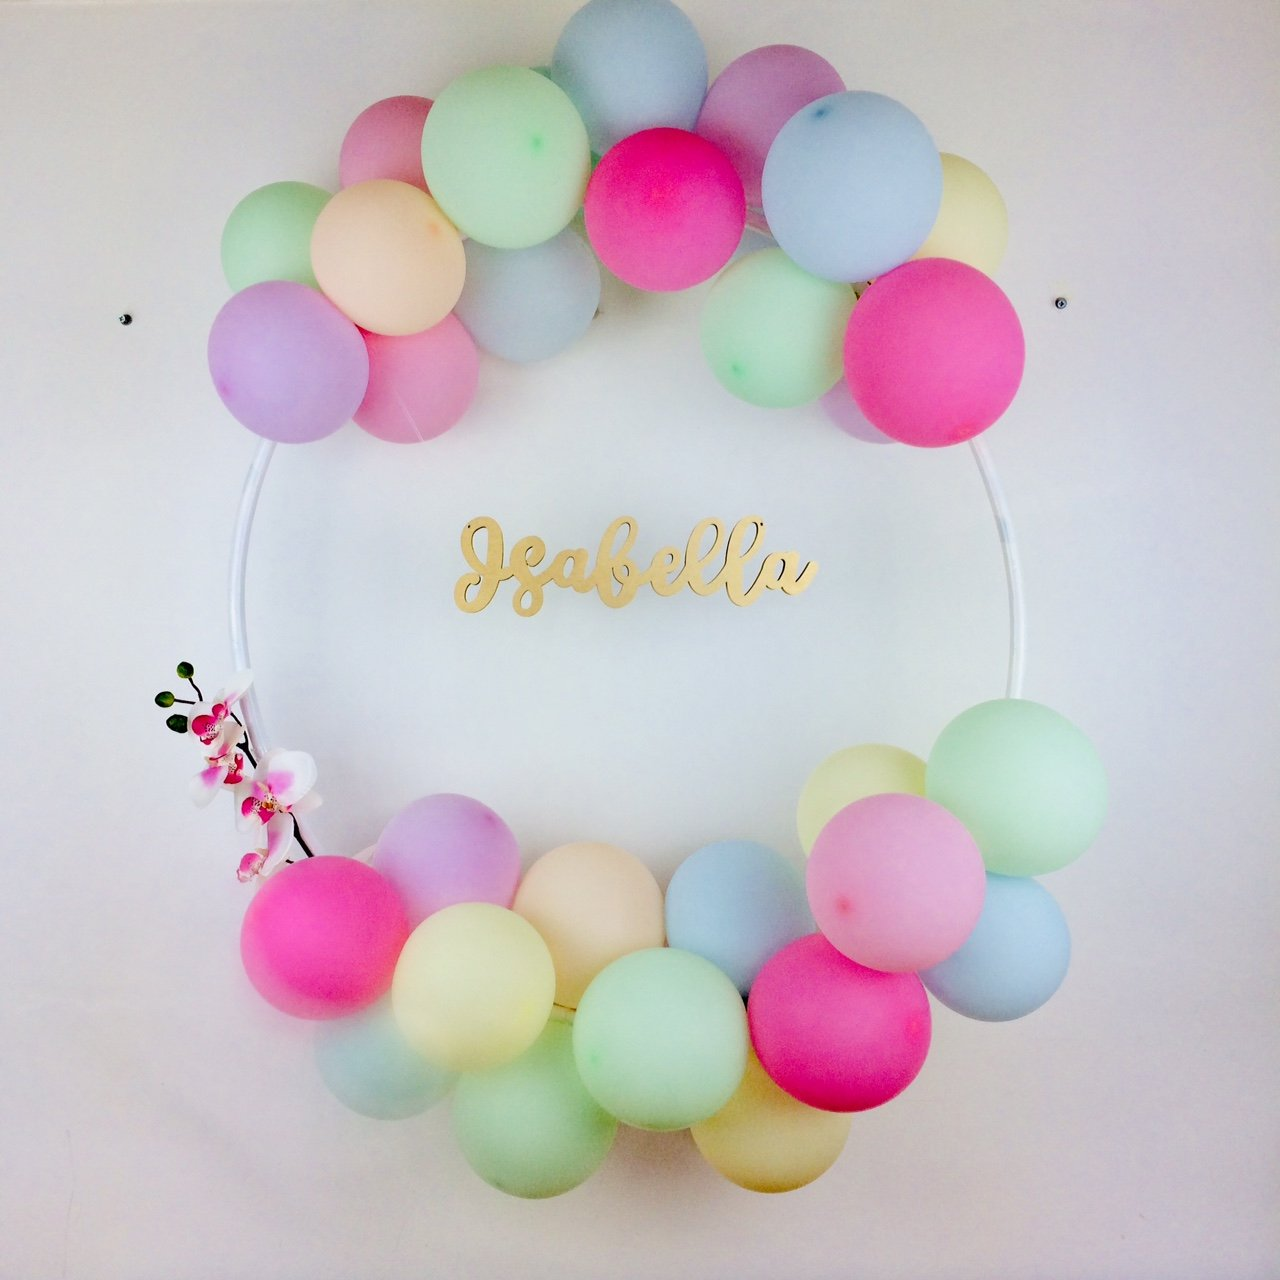 Bespoke Balloon Hoop Name Kit I Bespoke Birthday Decorations I My Dream Party Shop I UK